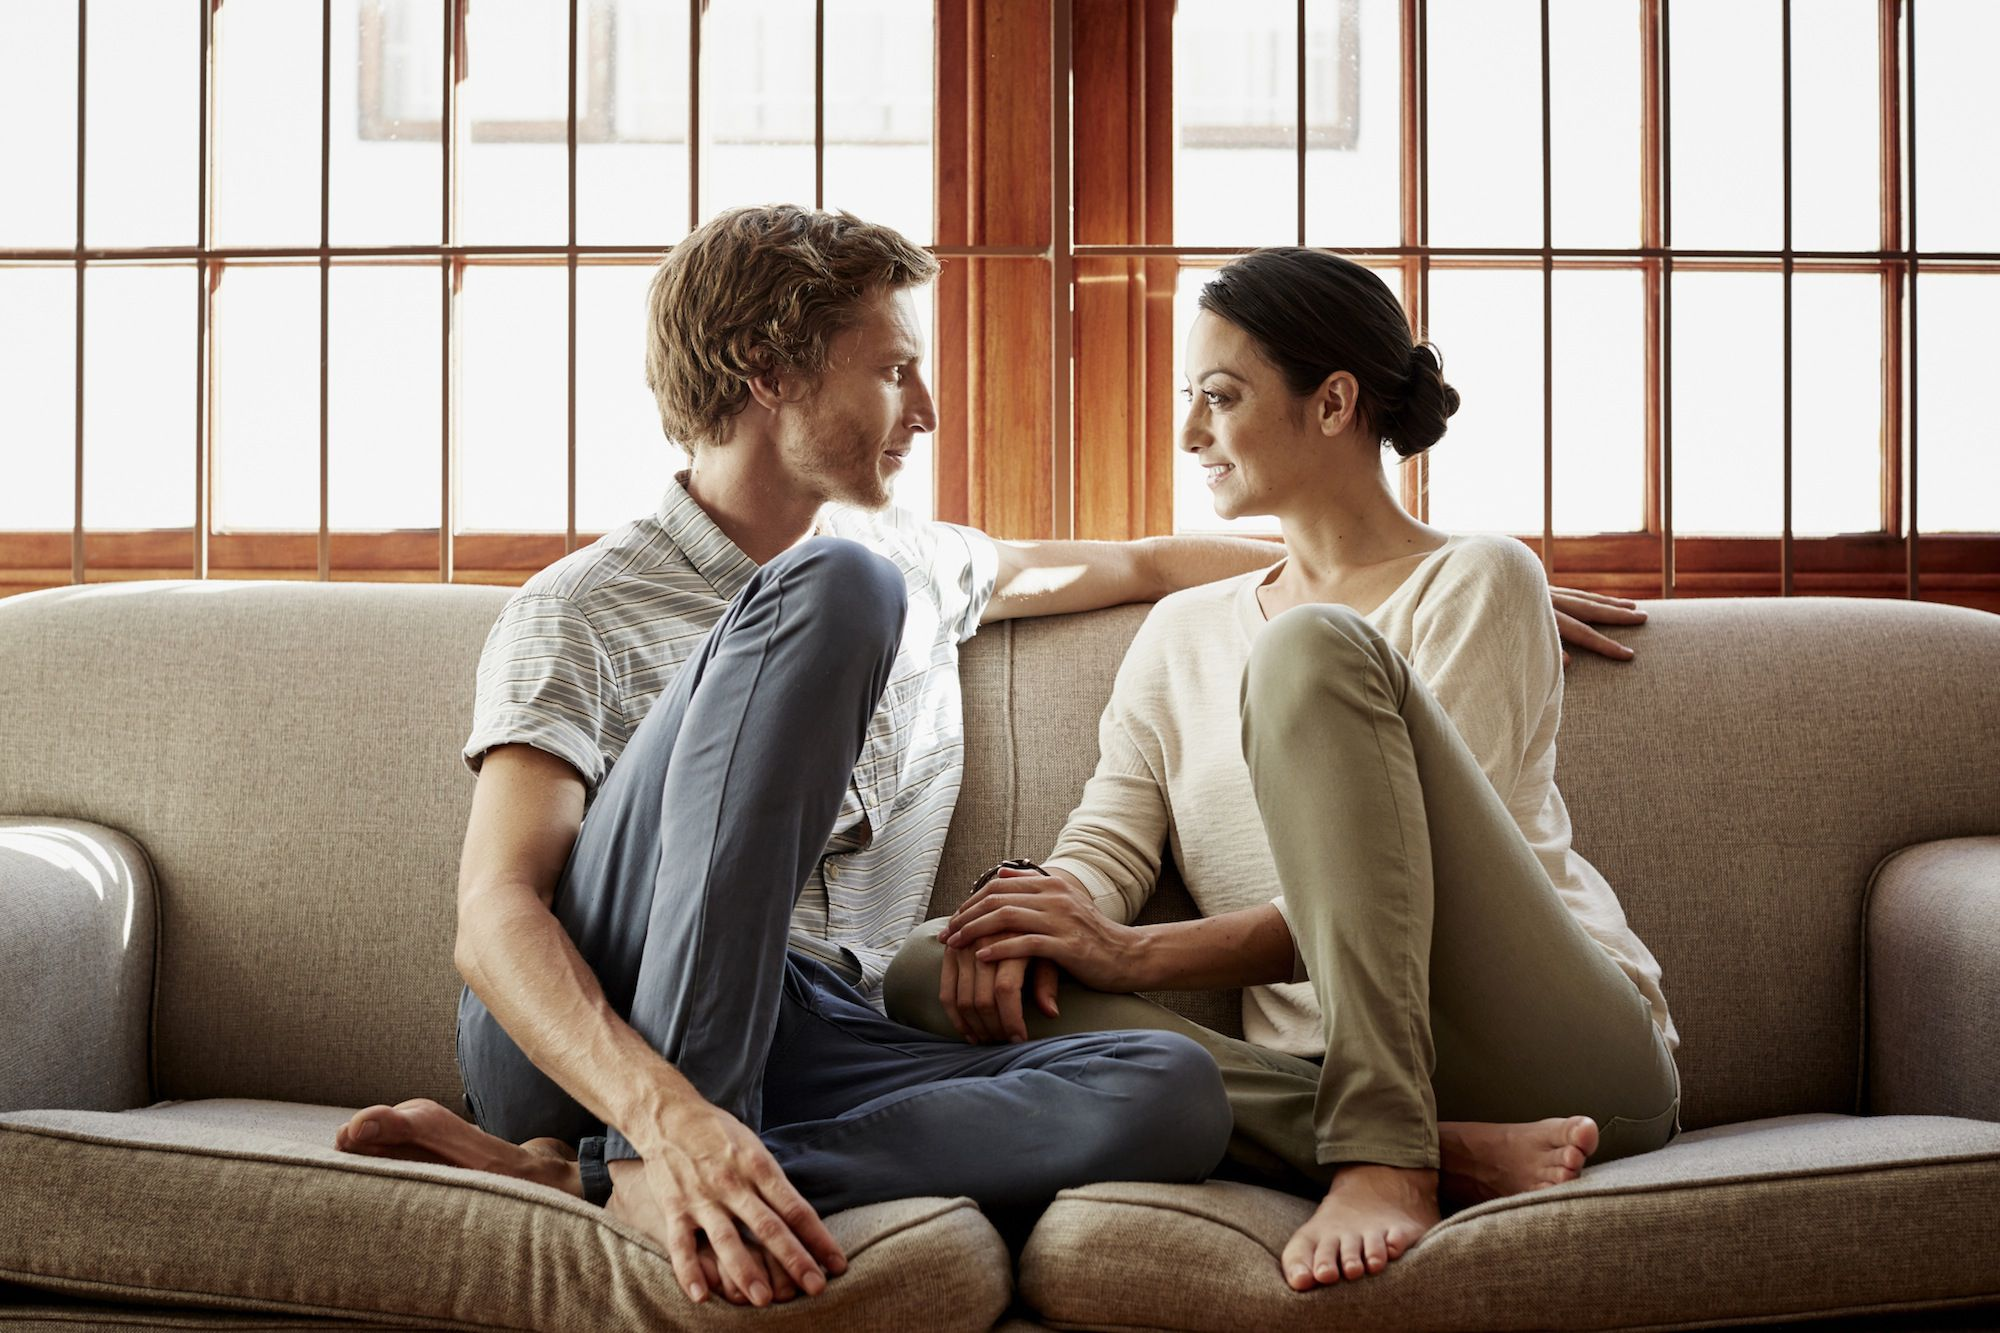 12 Ways to Build Intimacy in a Romantic Relationship